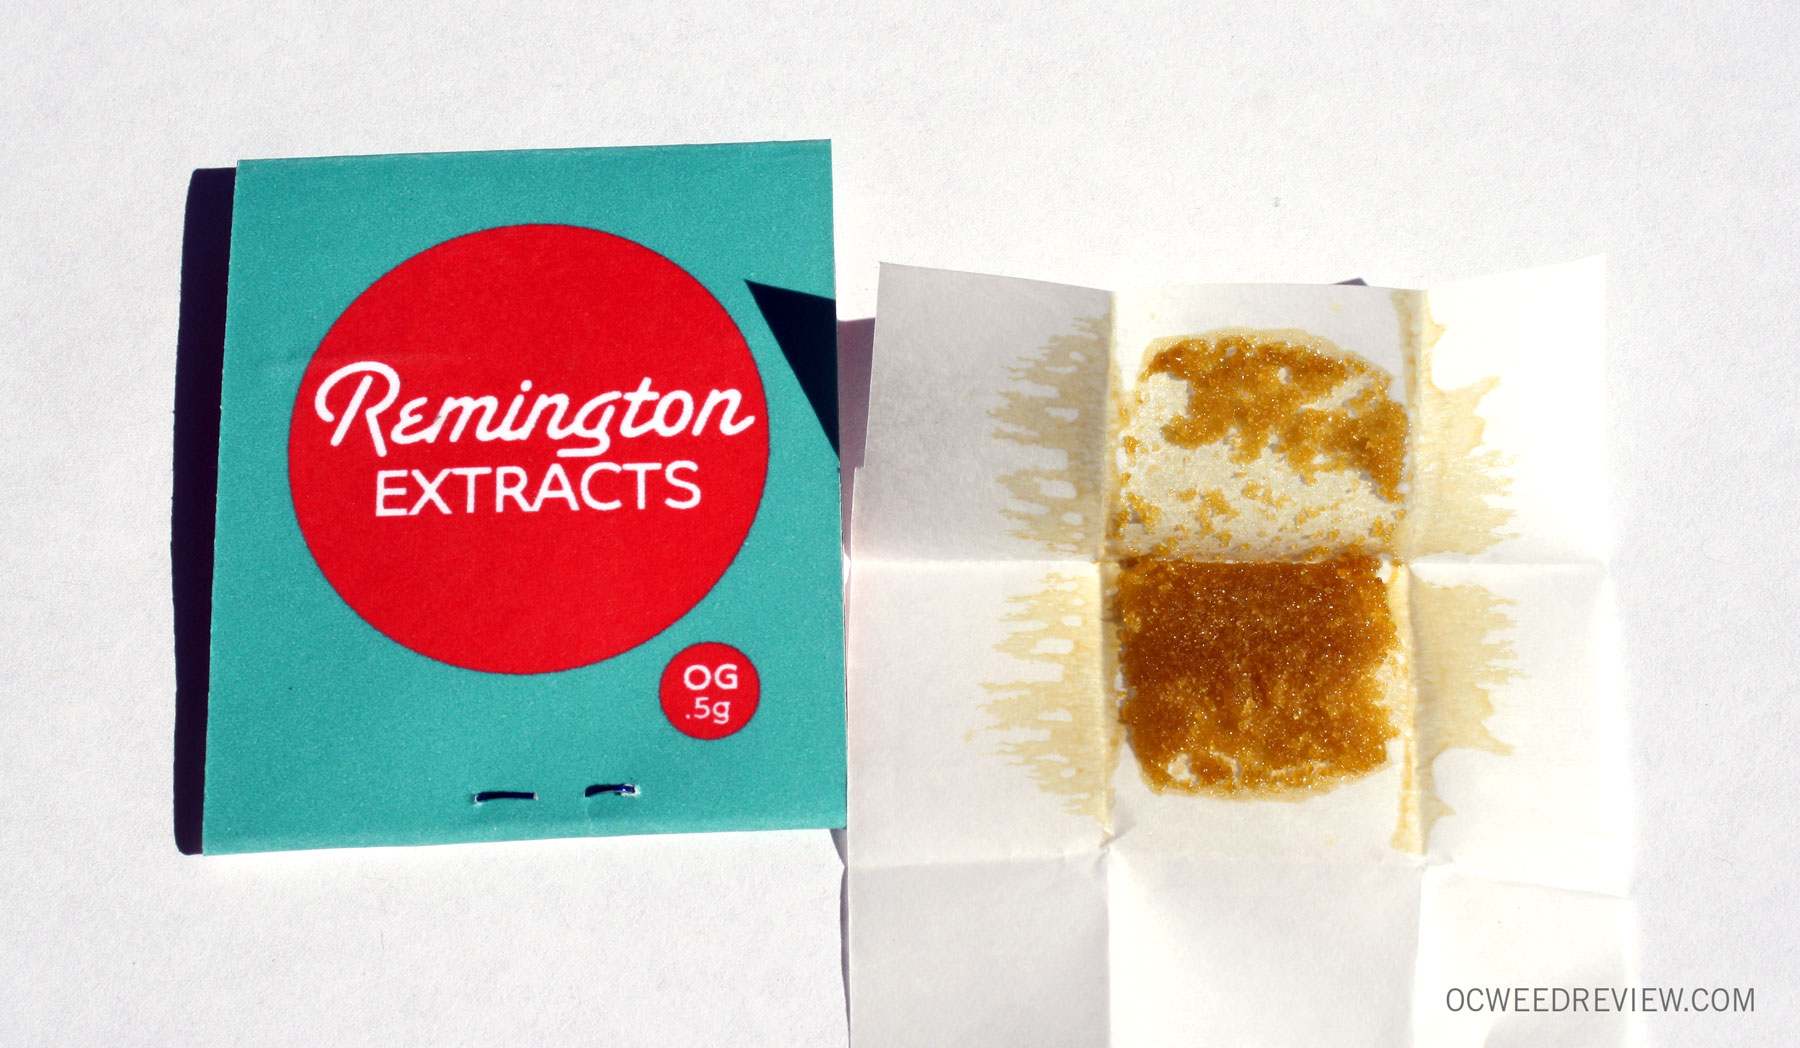 Remington Extracts OG #1 Space Crystals Extract Review